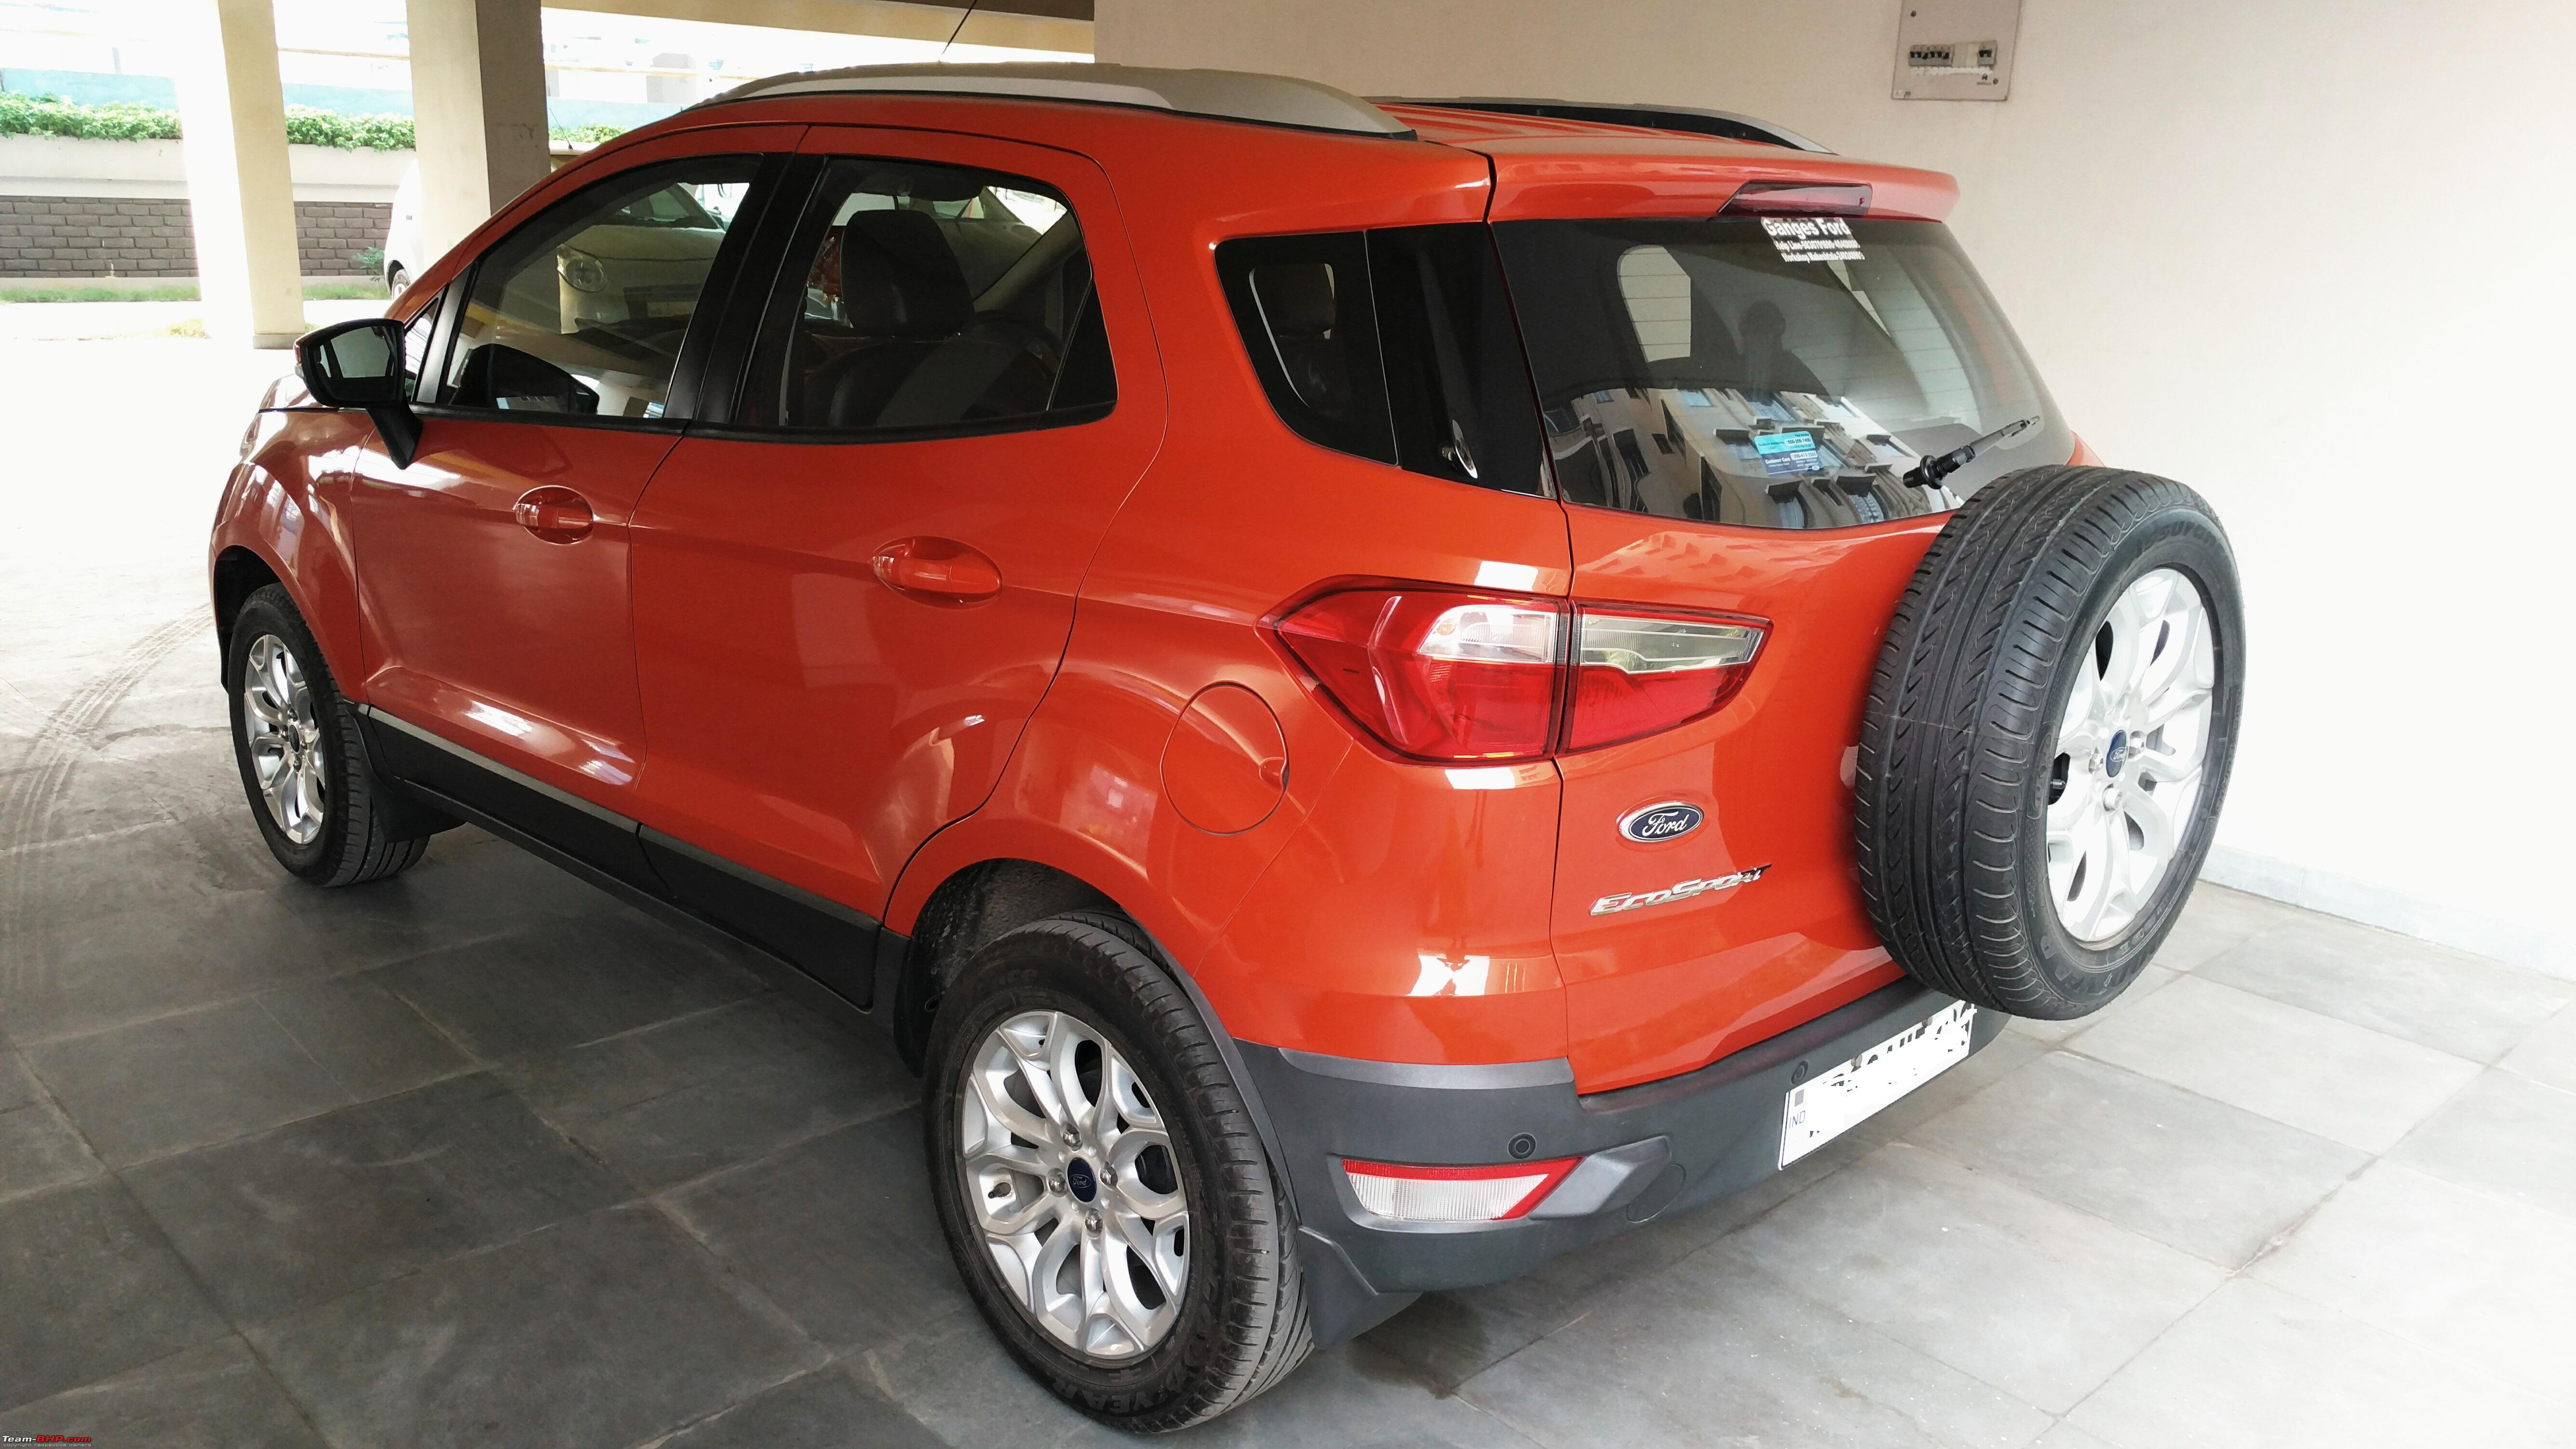 Ownership review my ford ecosport 1 5l diesel img_20161218_152325 jpg